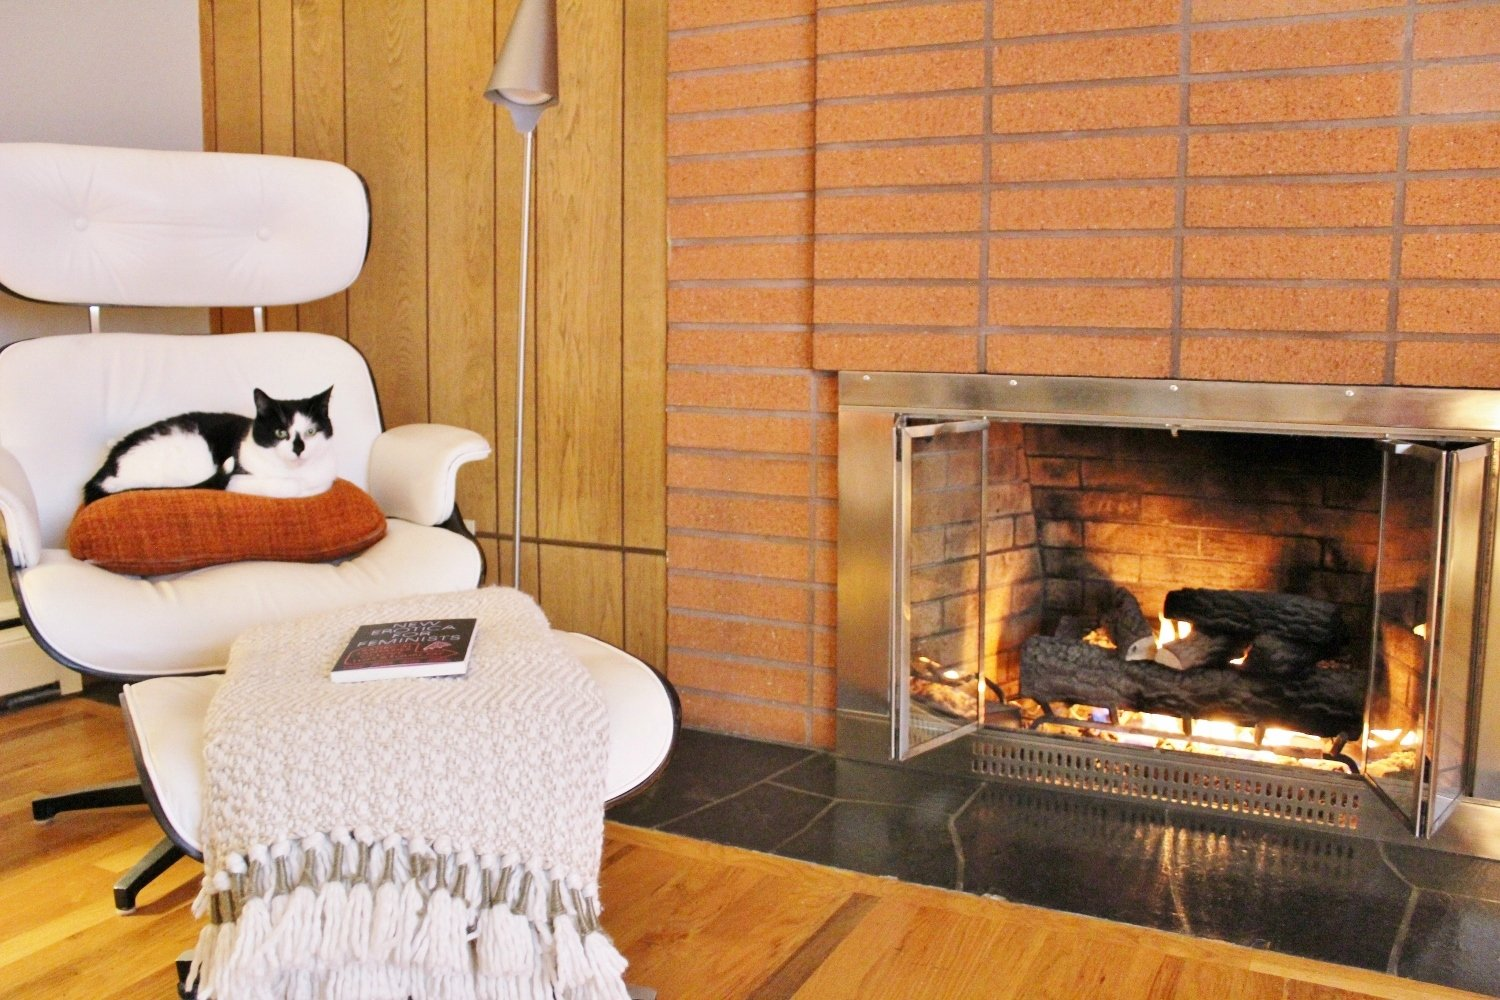 Cat relaxing in chair next to midcentury modern fireplace